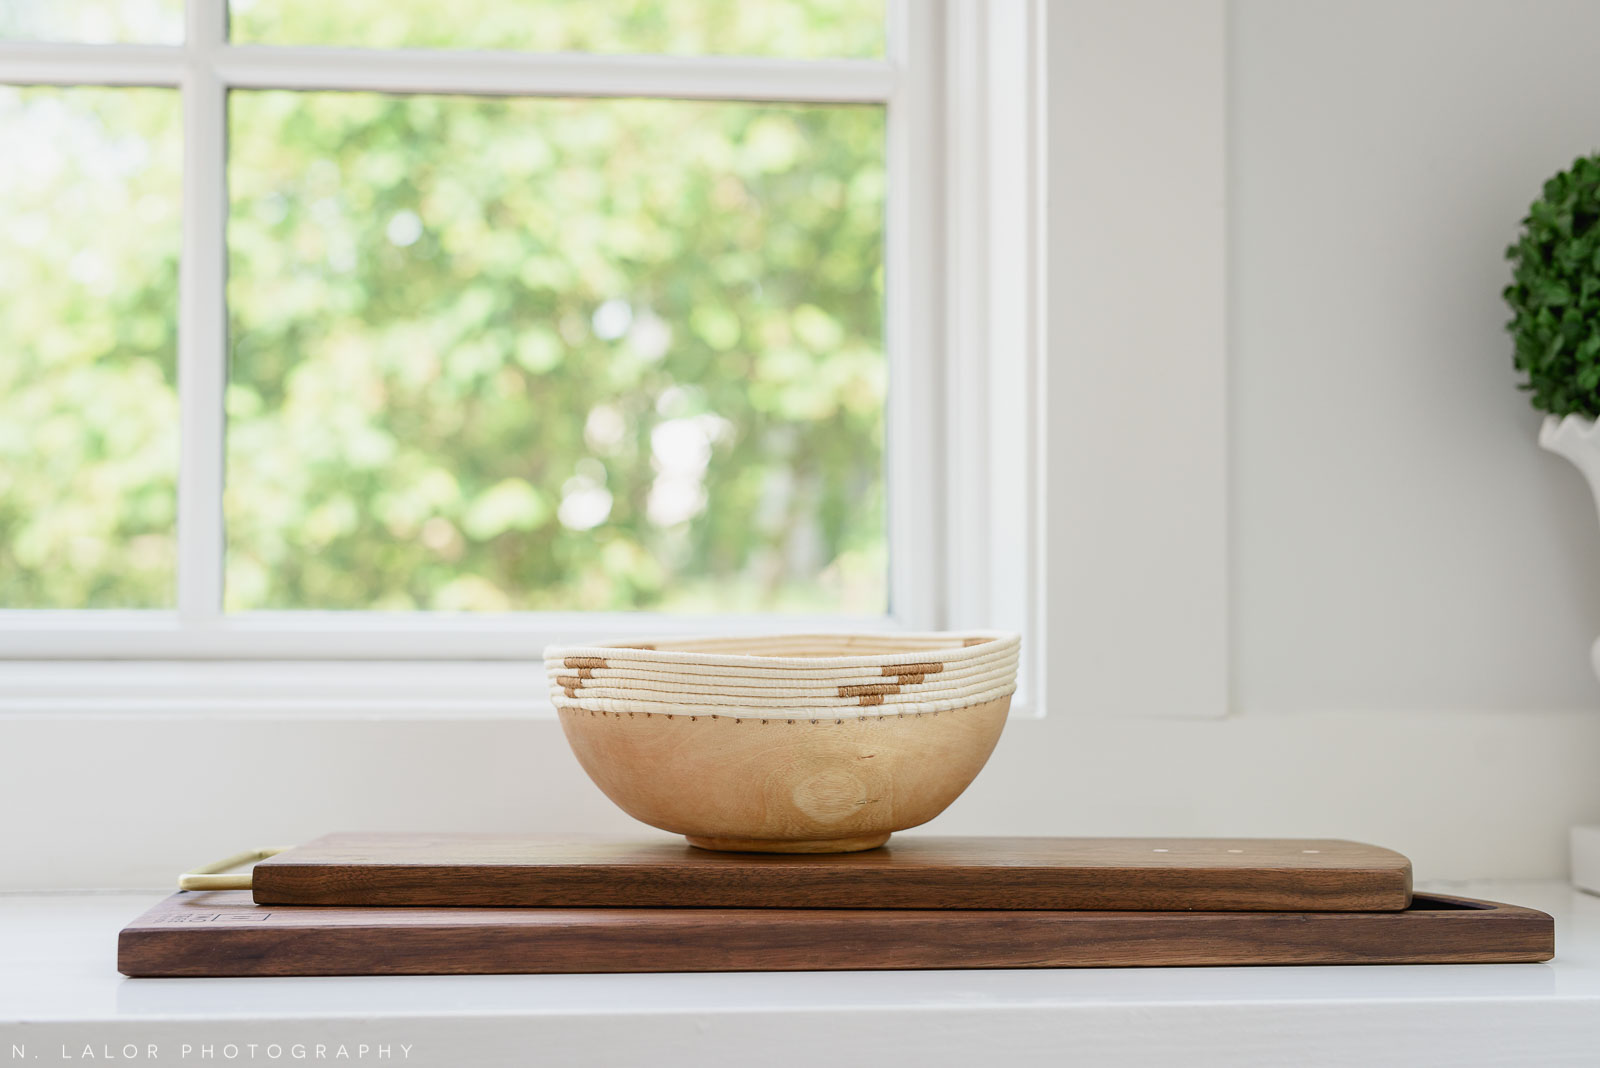 Beautiful handmade home goods and decor. Local Small Business photoshoot for METTA10 by N. Lalor Photography. Westport, Connecticut.